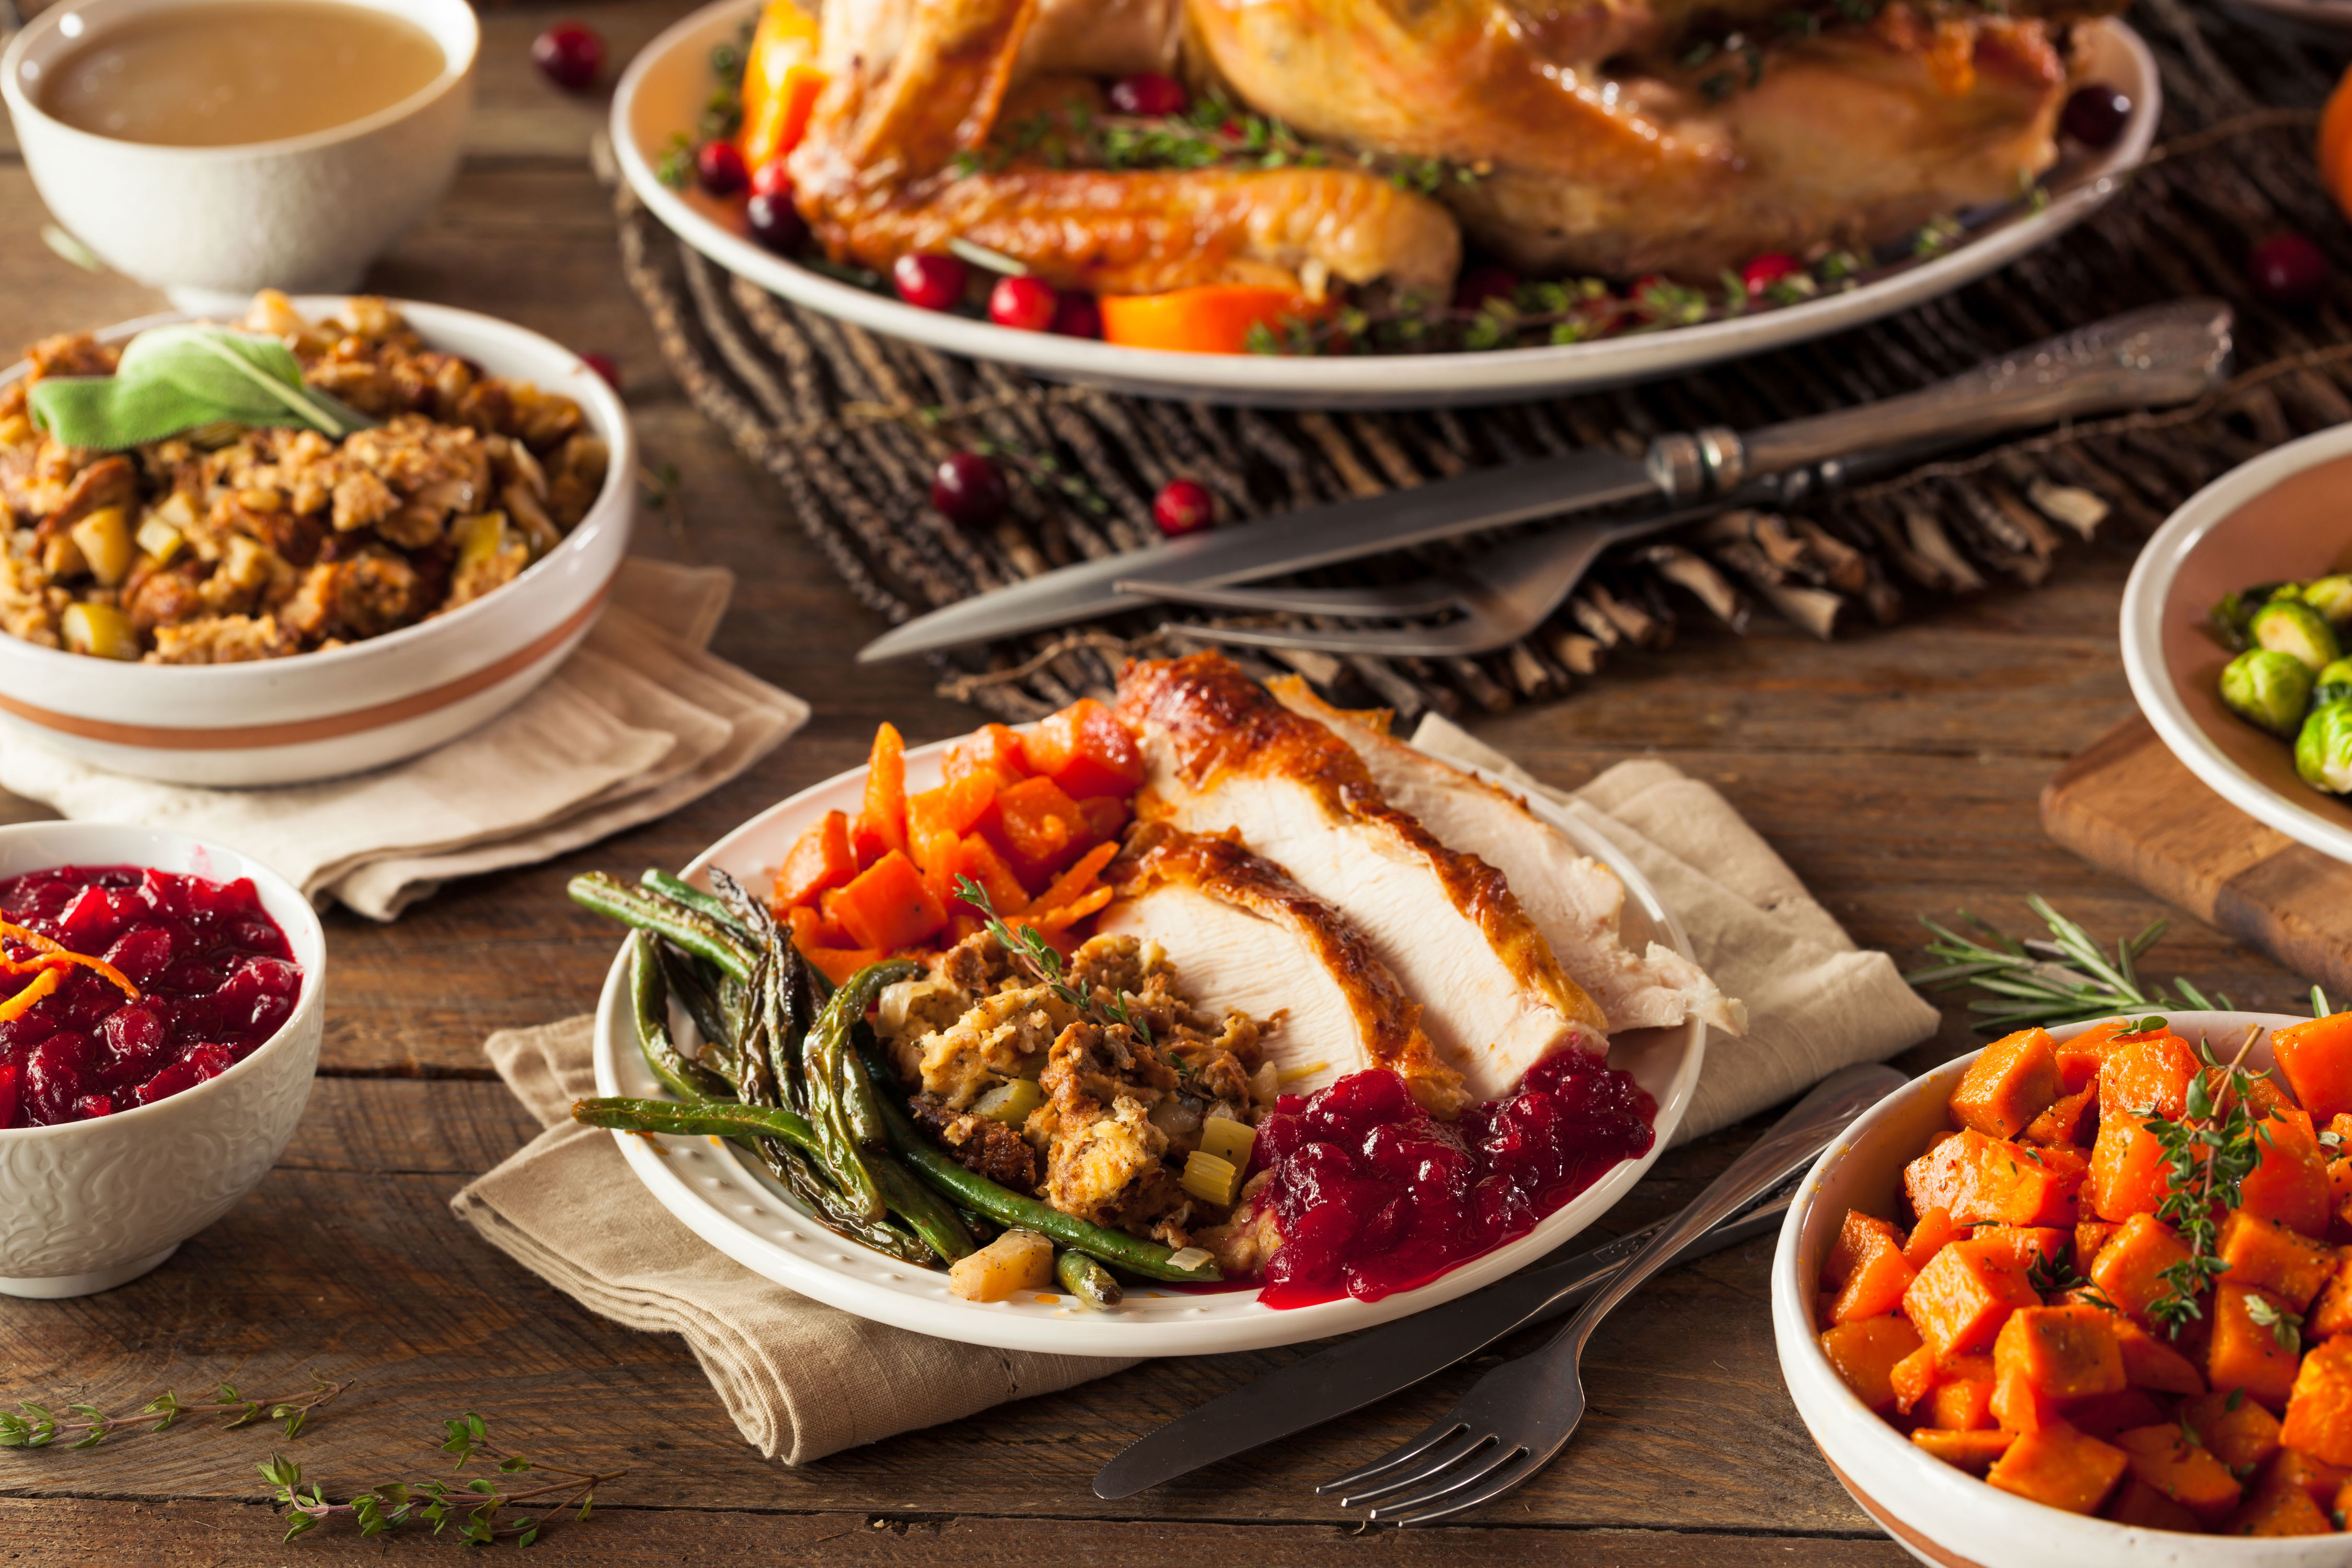 WATCH: The Only Reason You Need to Host Friendsgiving This Year